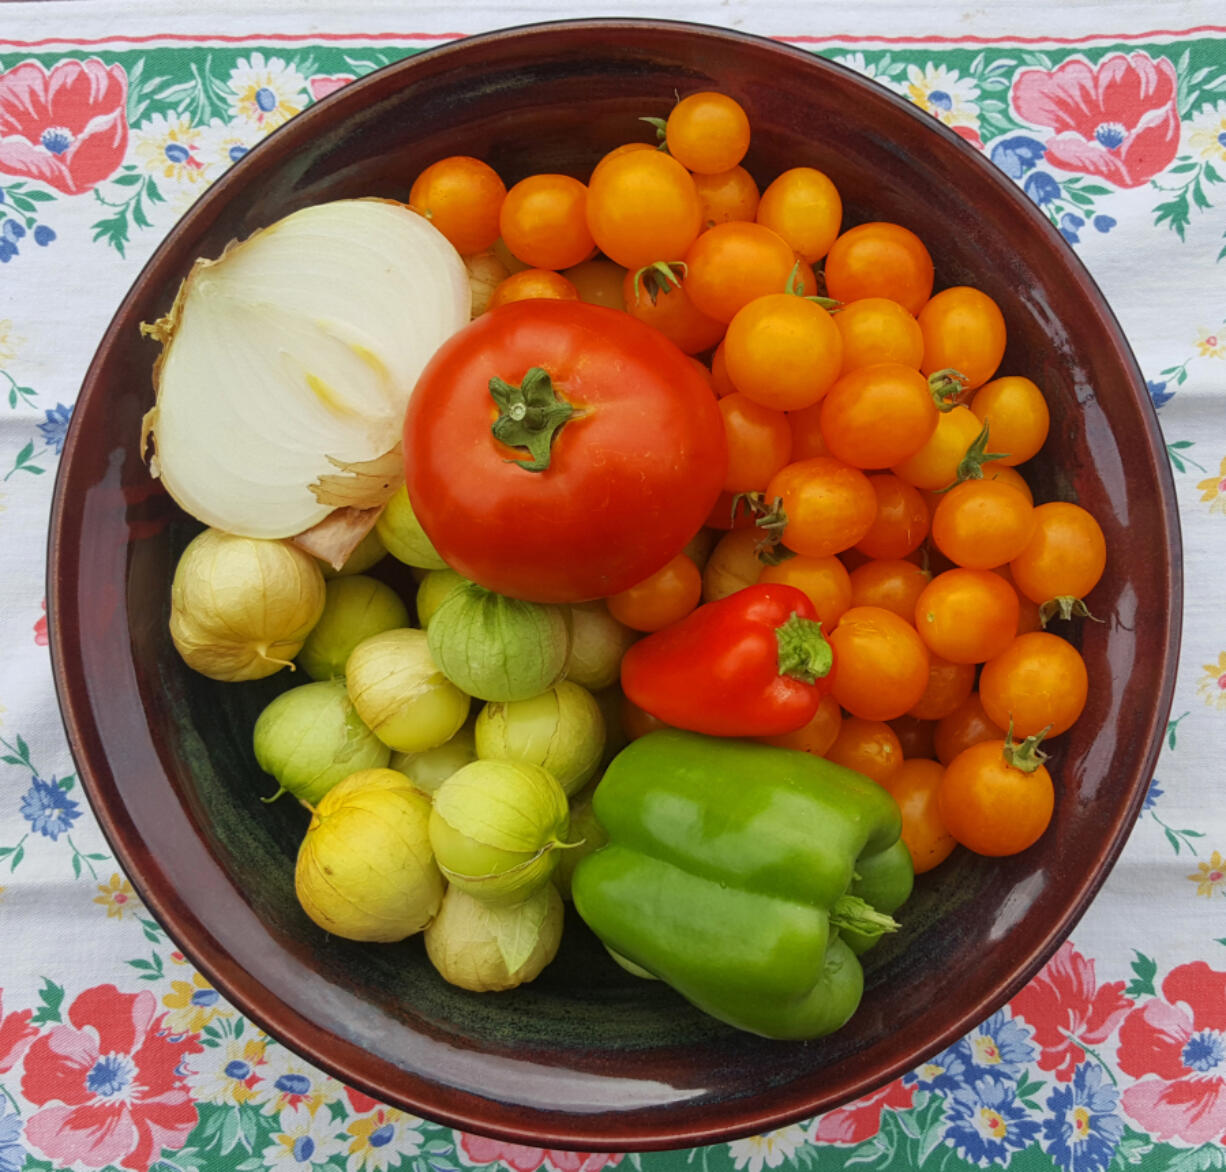 What to do with all these tomatillos, tomatoes and peppers from my garden? Make salsa, of course!